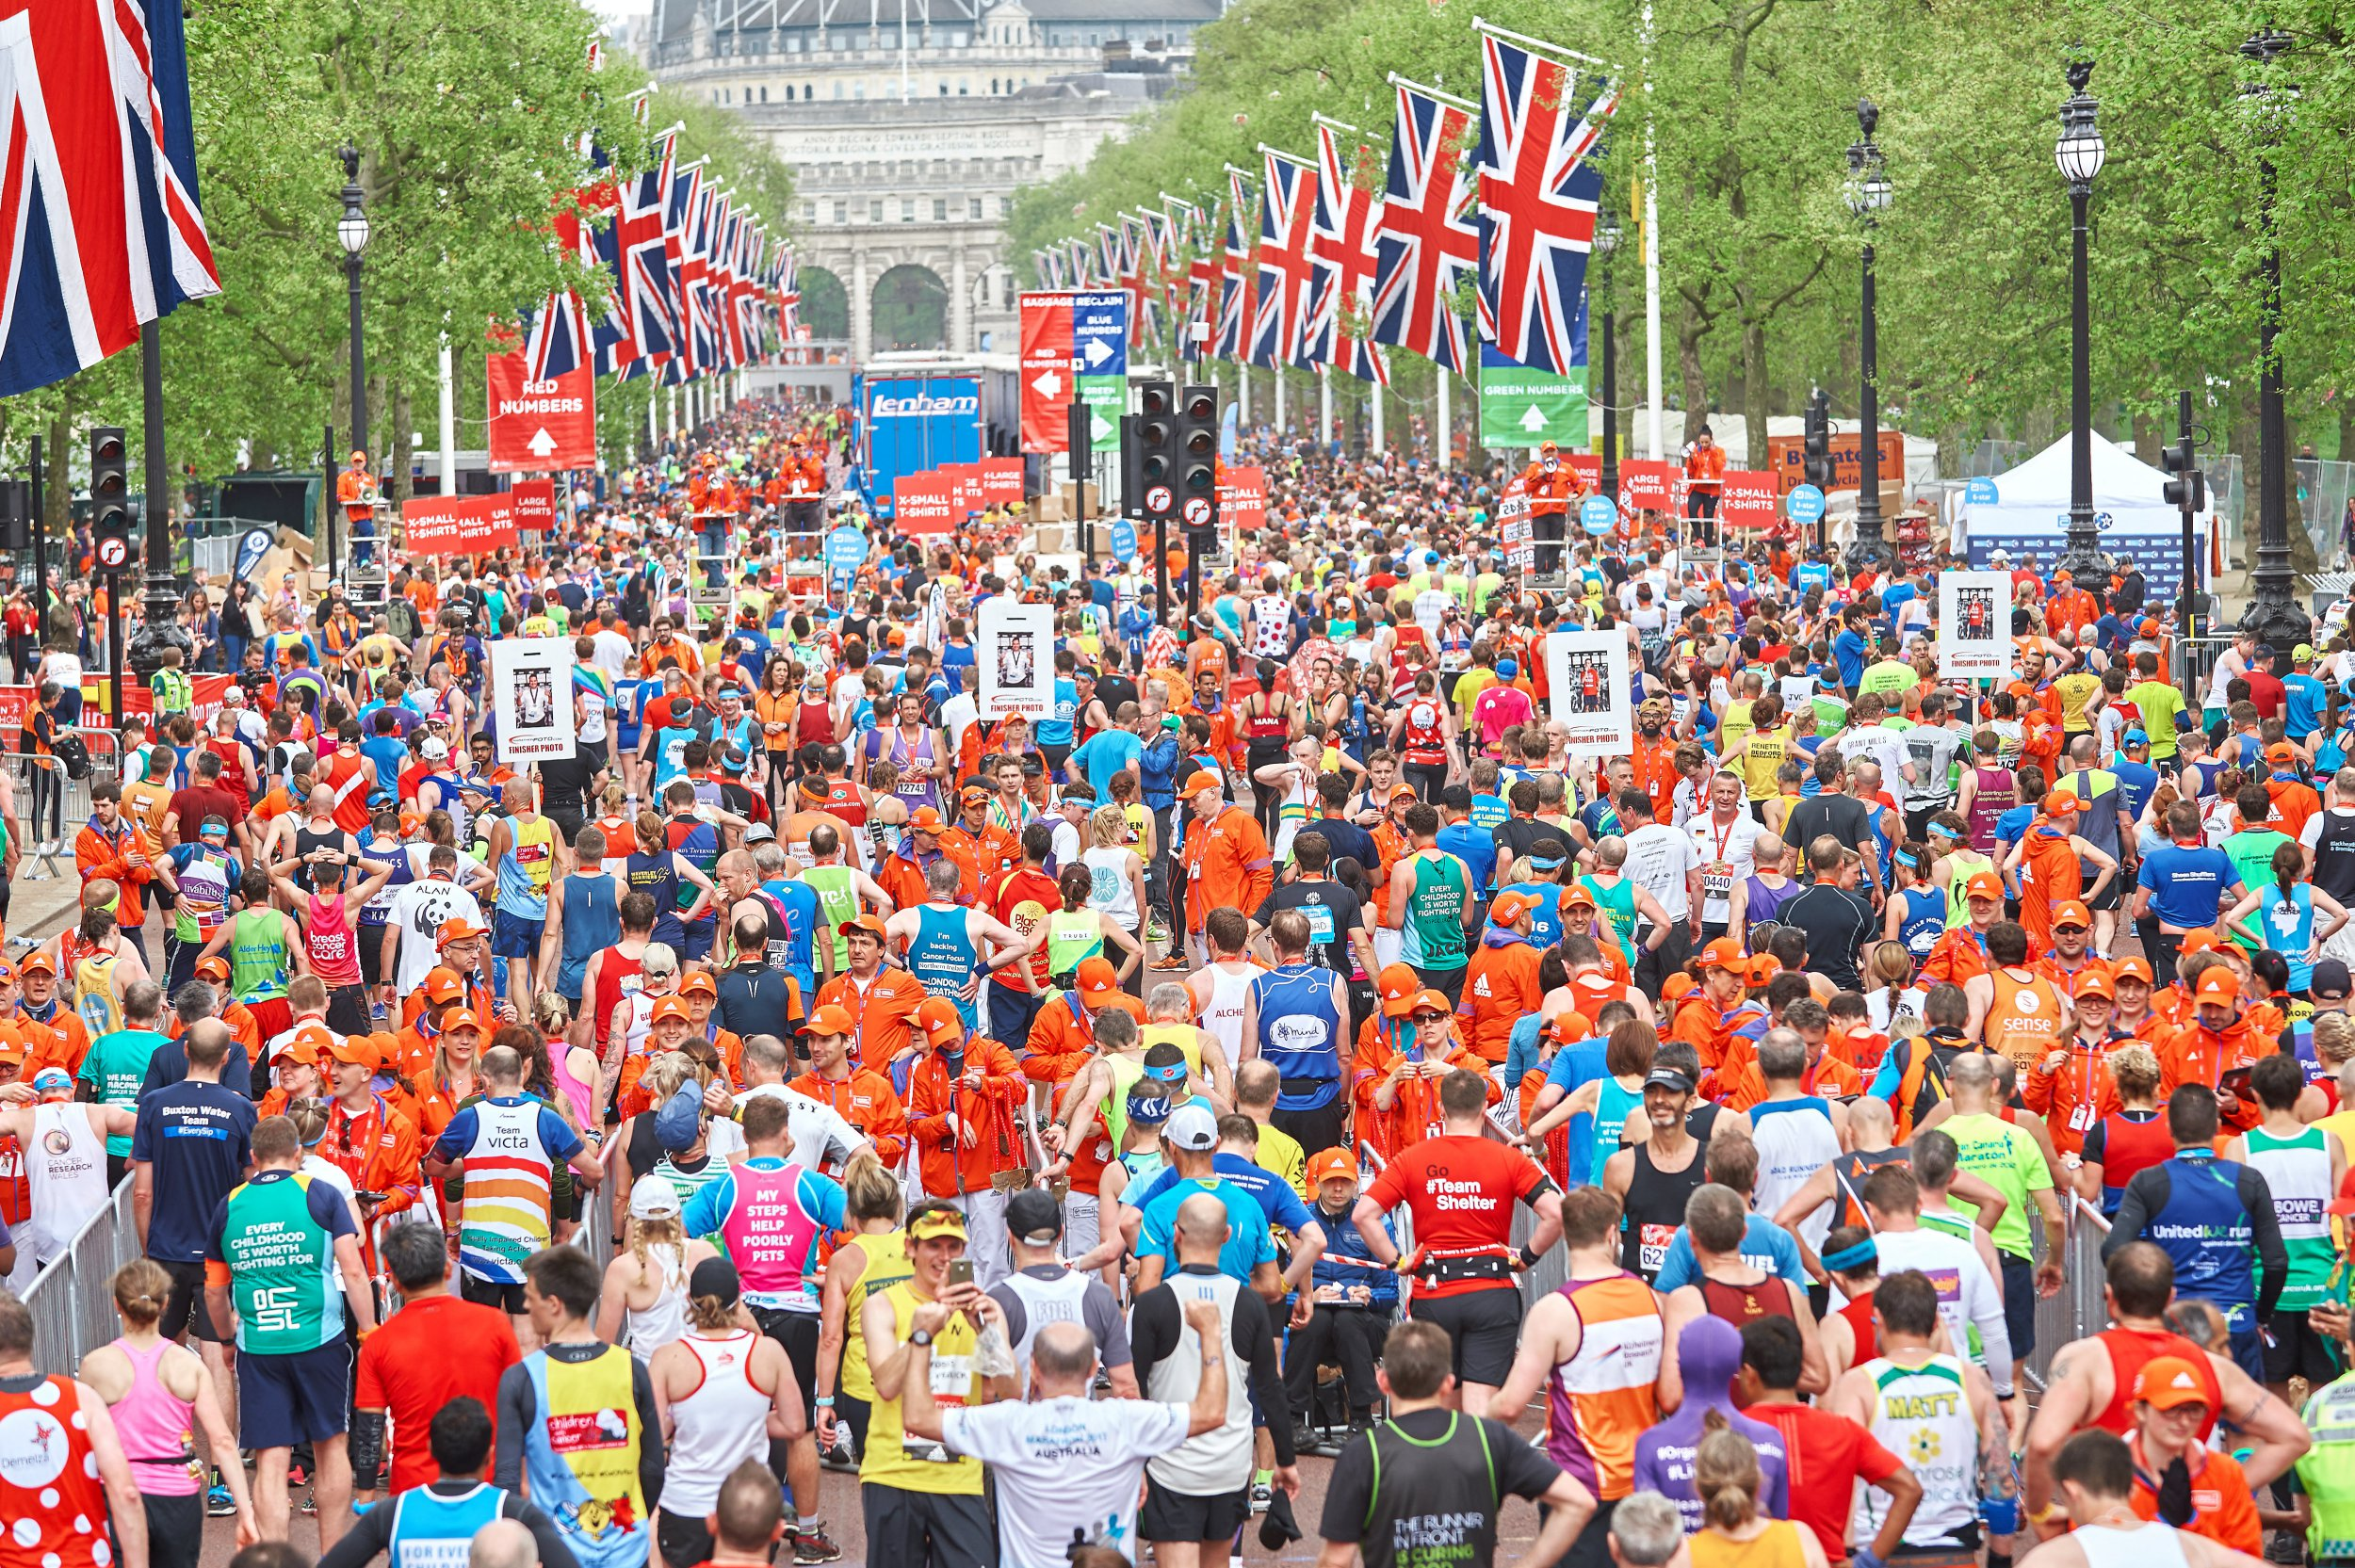 London Marathon route, starting point and number of runners